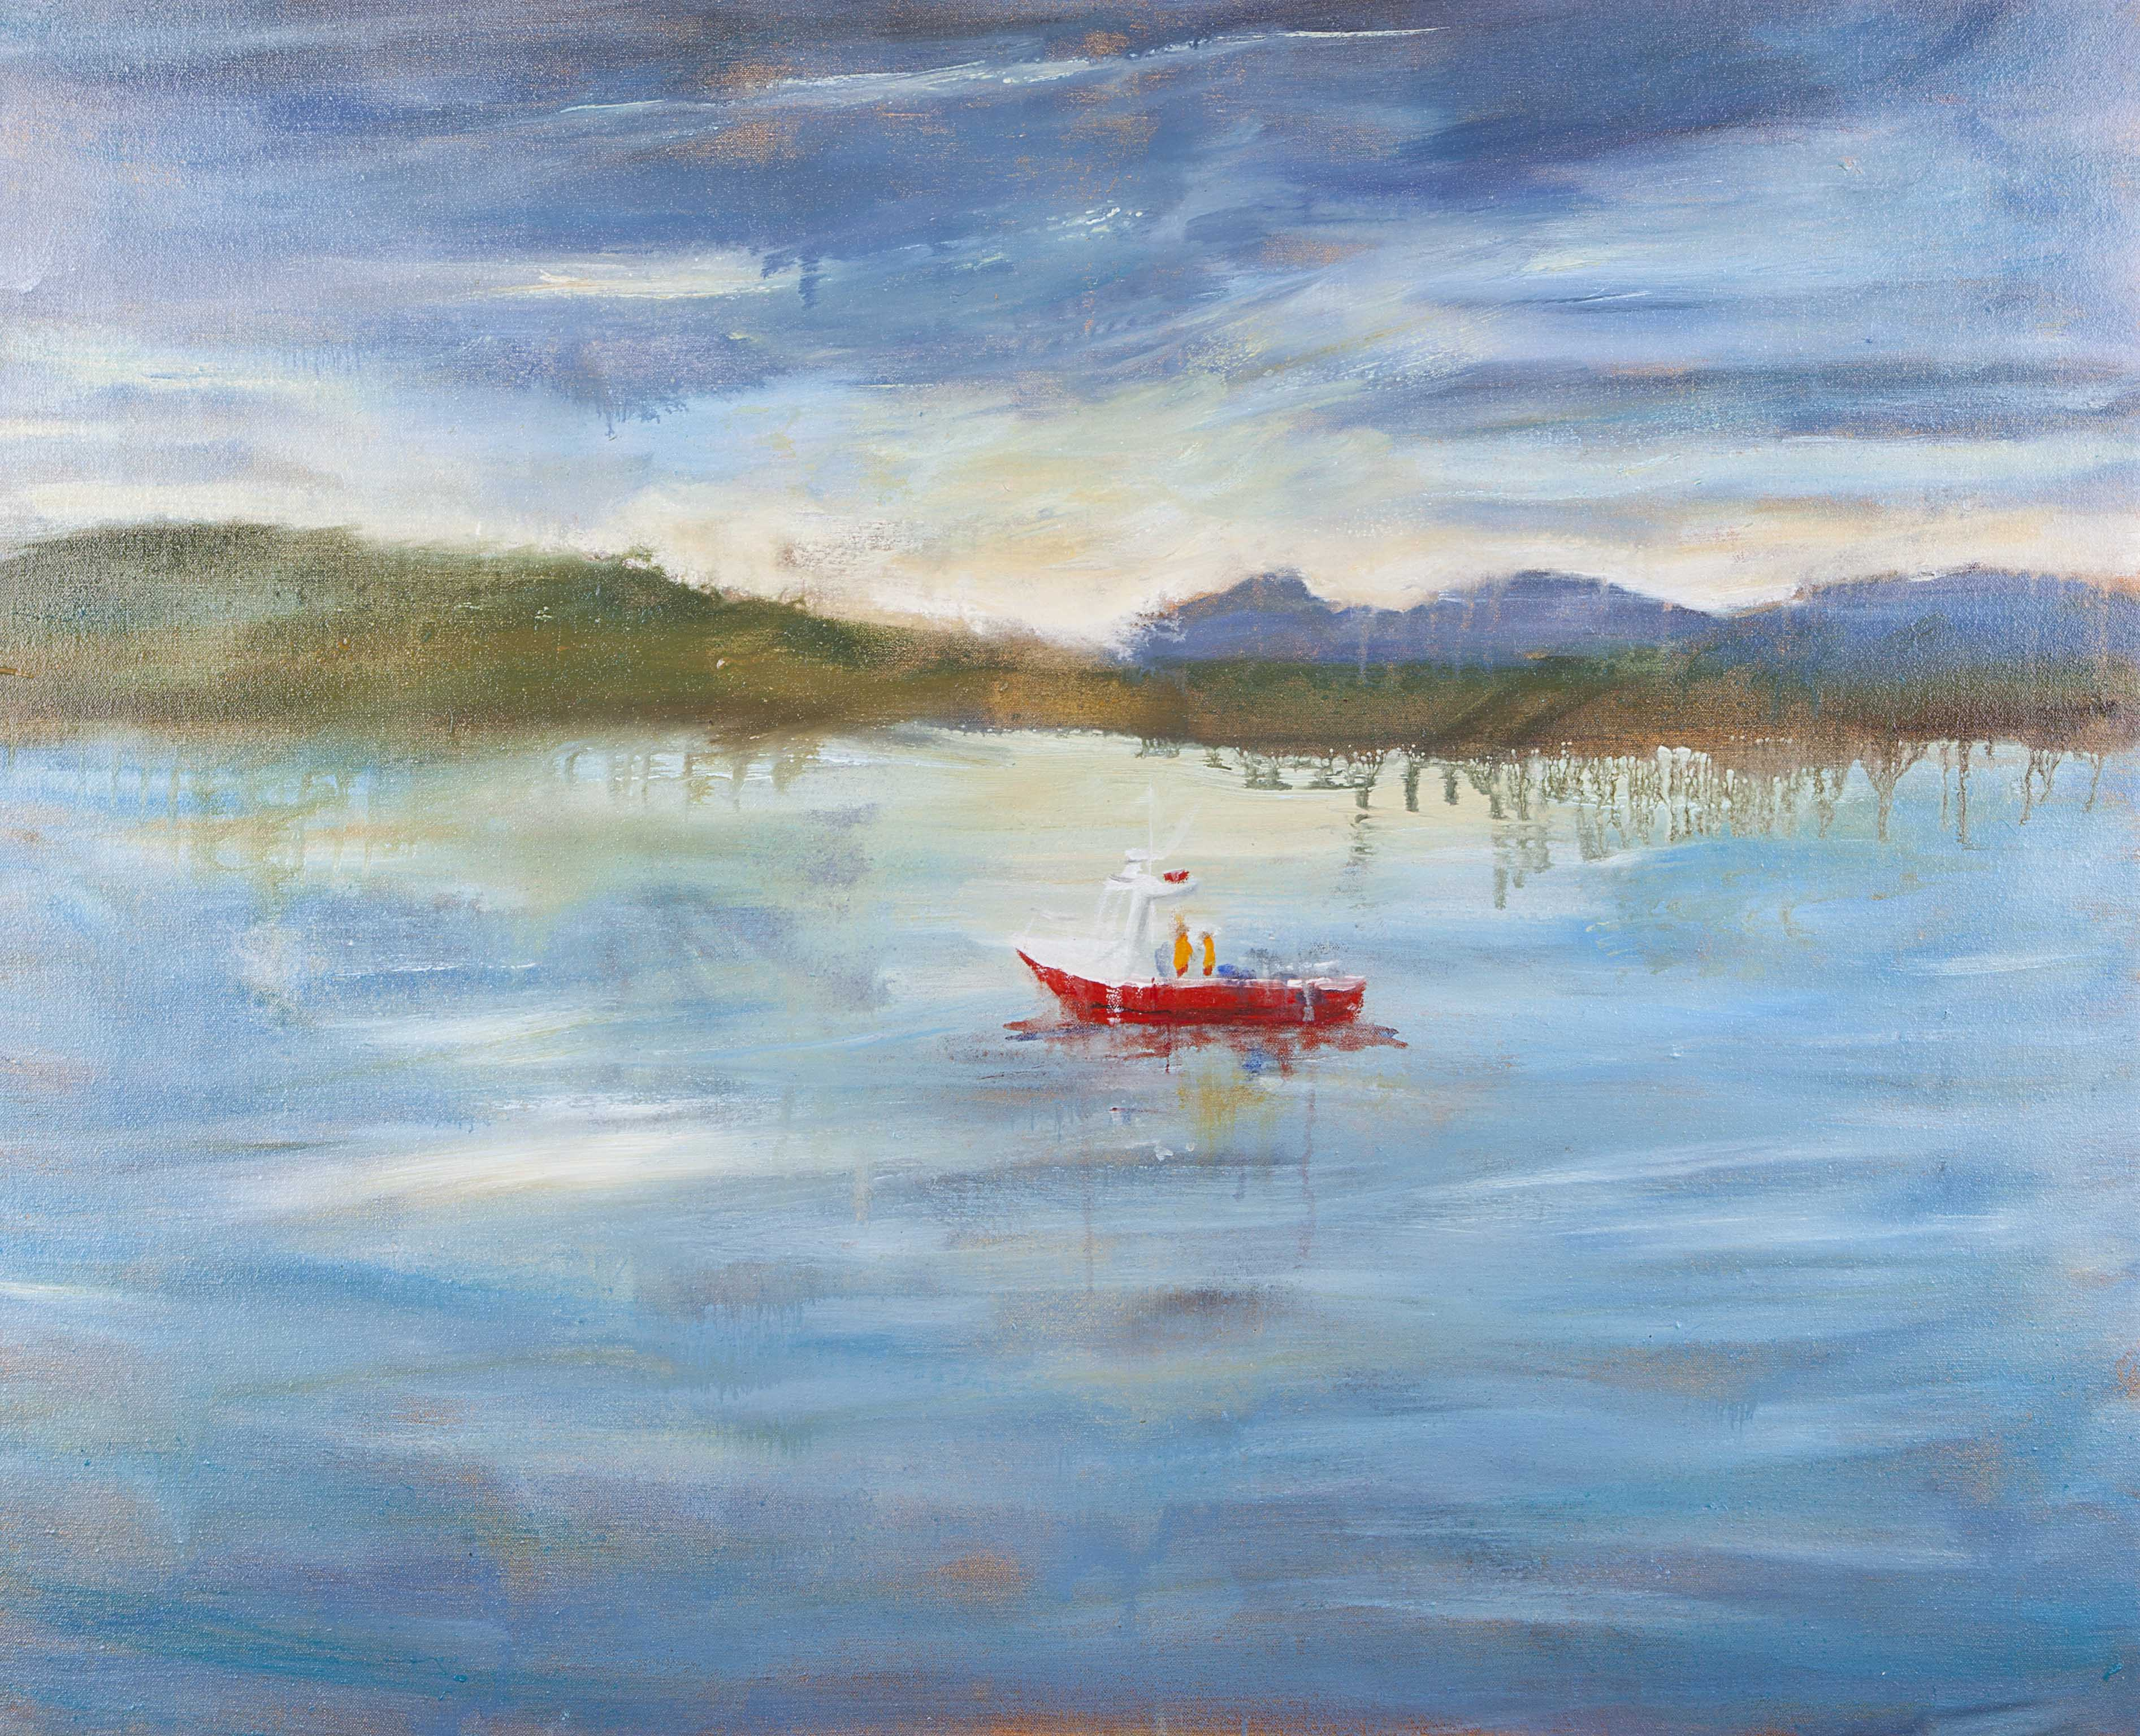 The Red Boat, Ireland